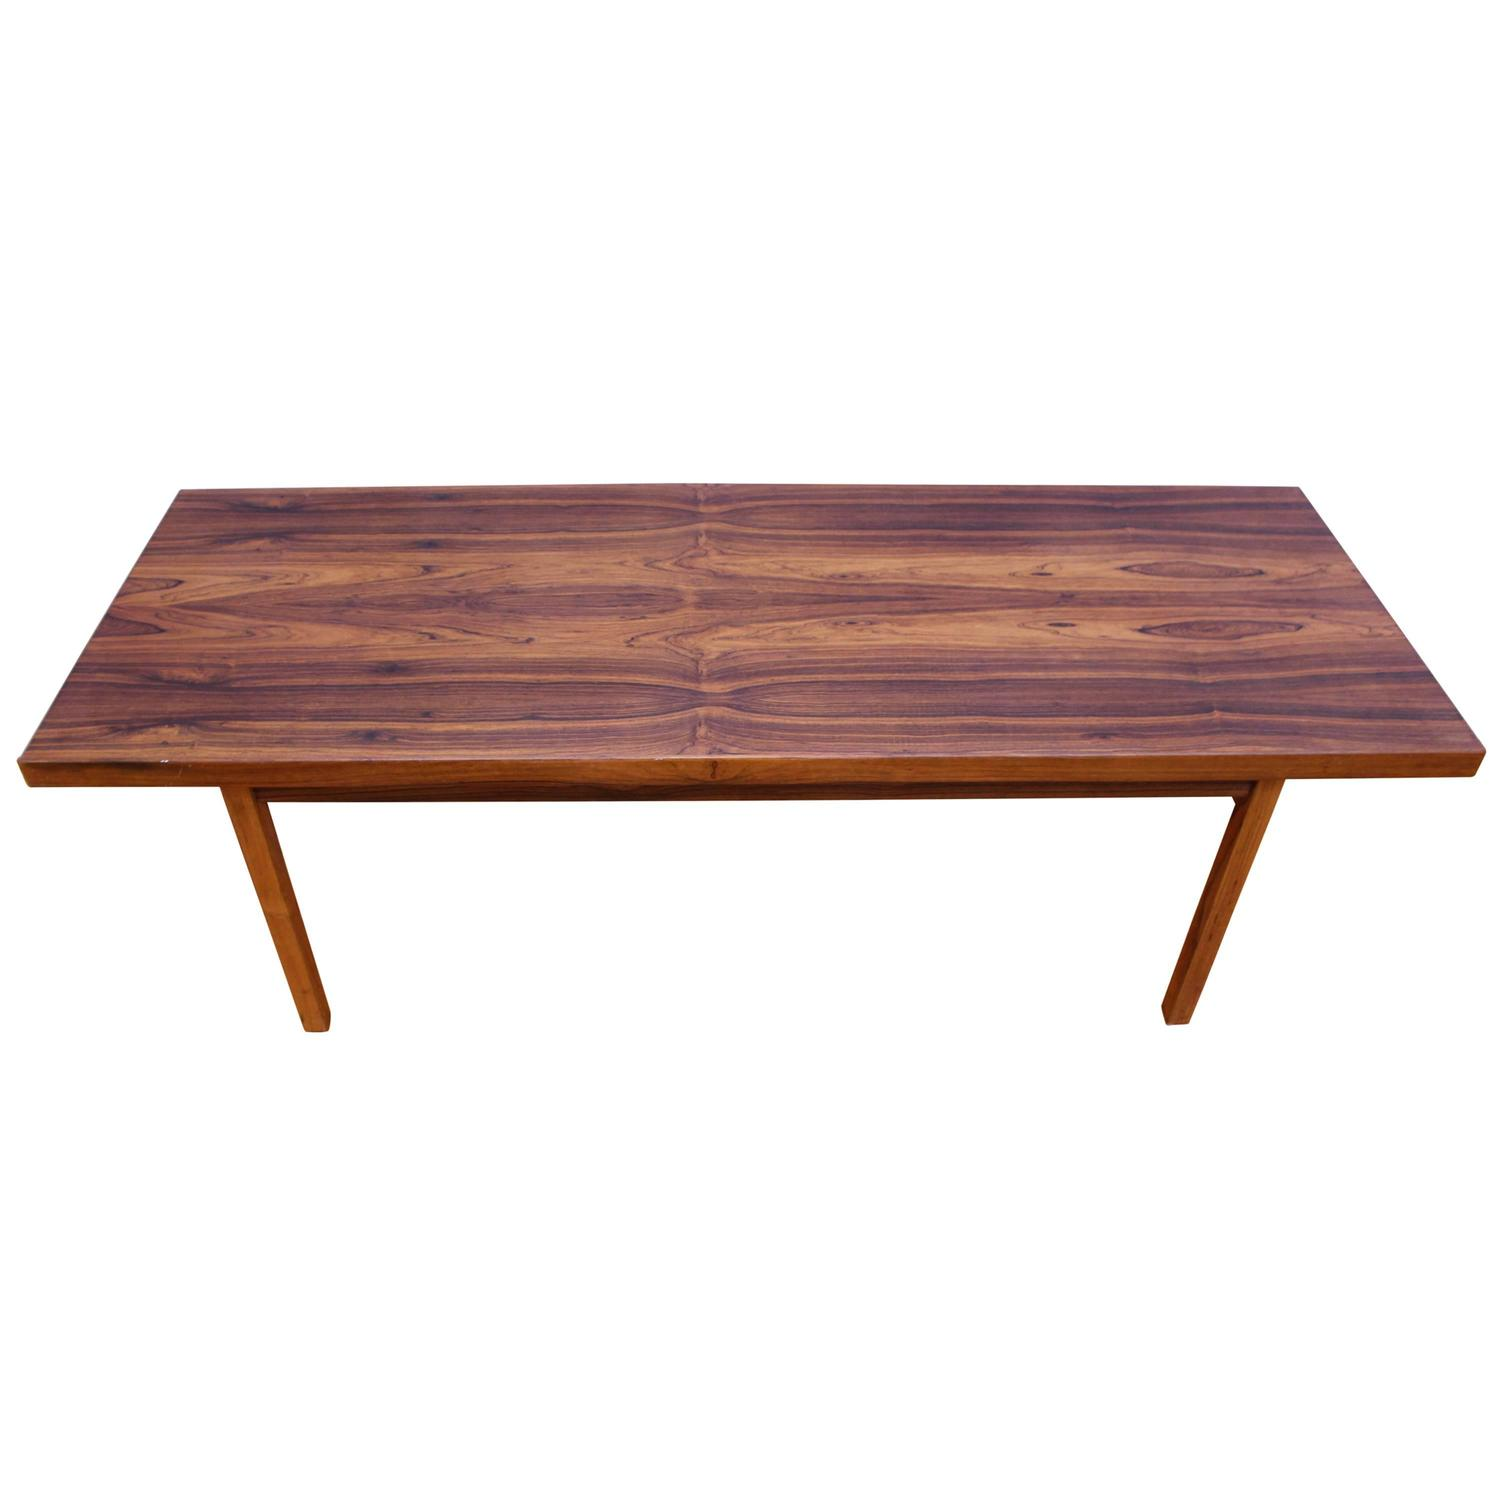 danish mid century modern rosewood coffee table for sale at 1stdibs. Black Bedroom Furniture Sets. Home Design Ideas